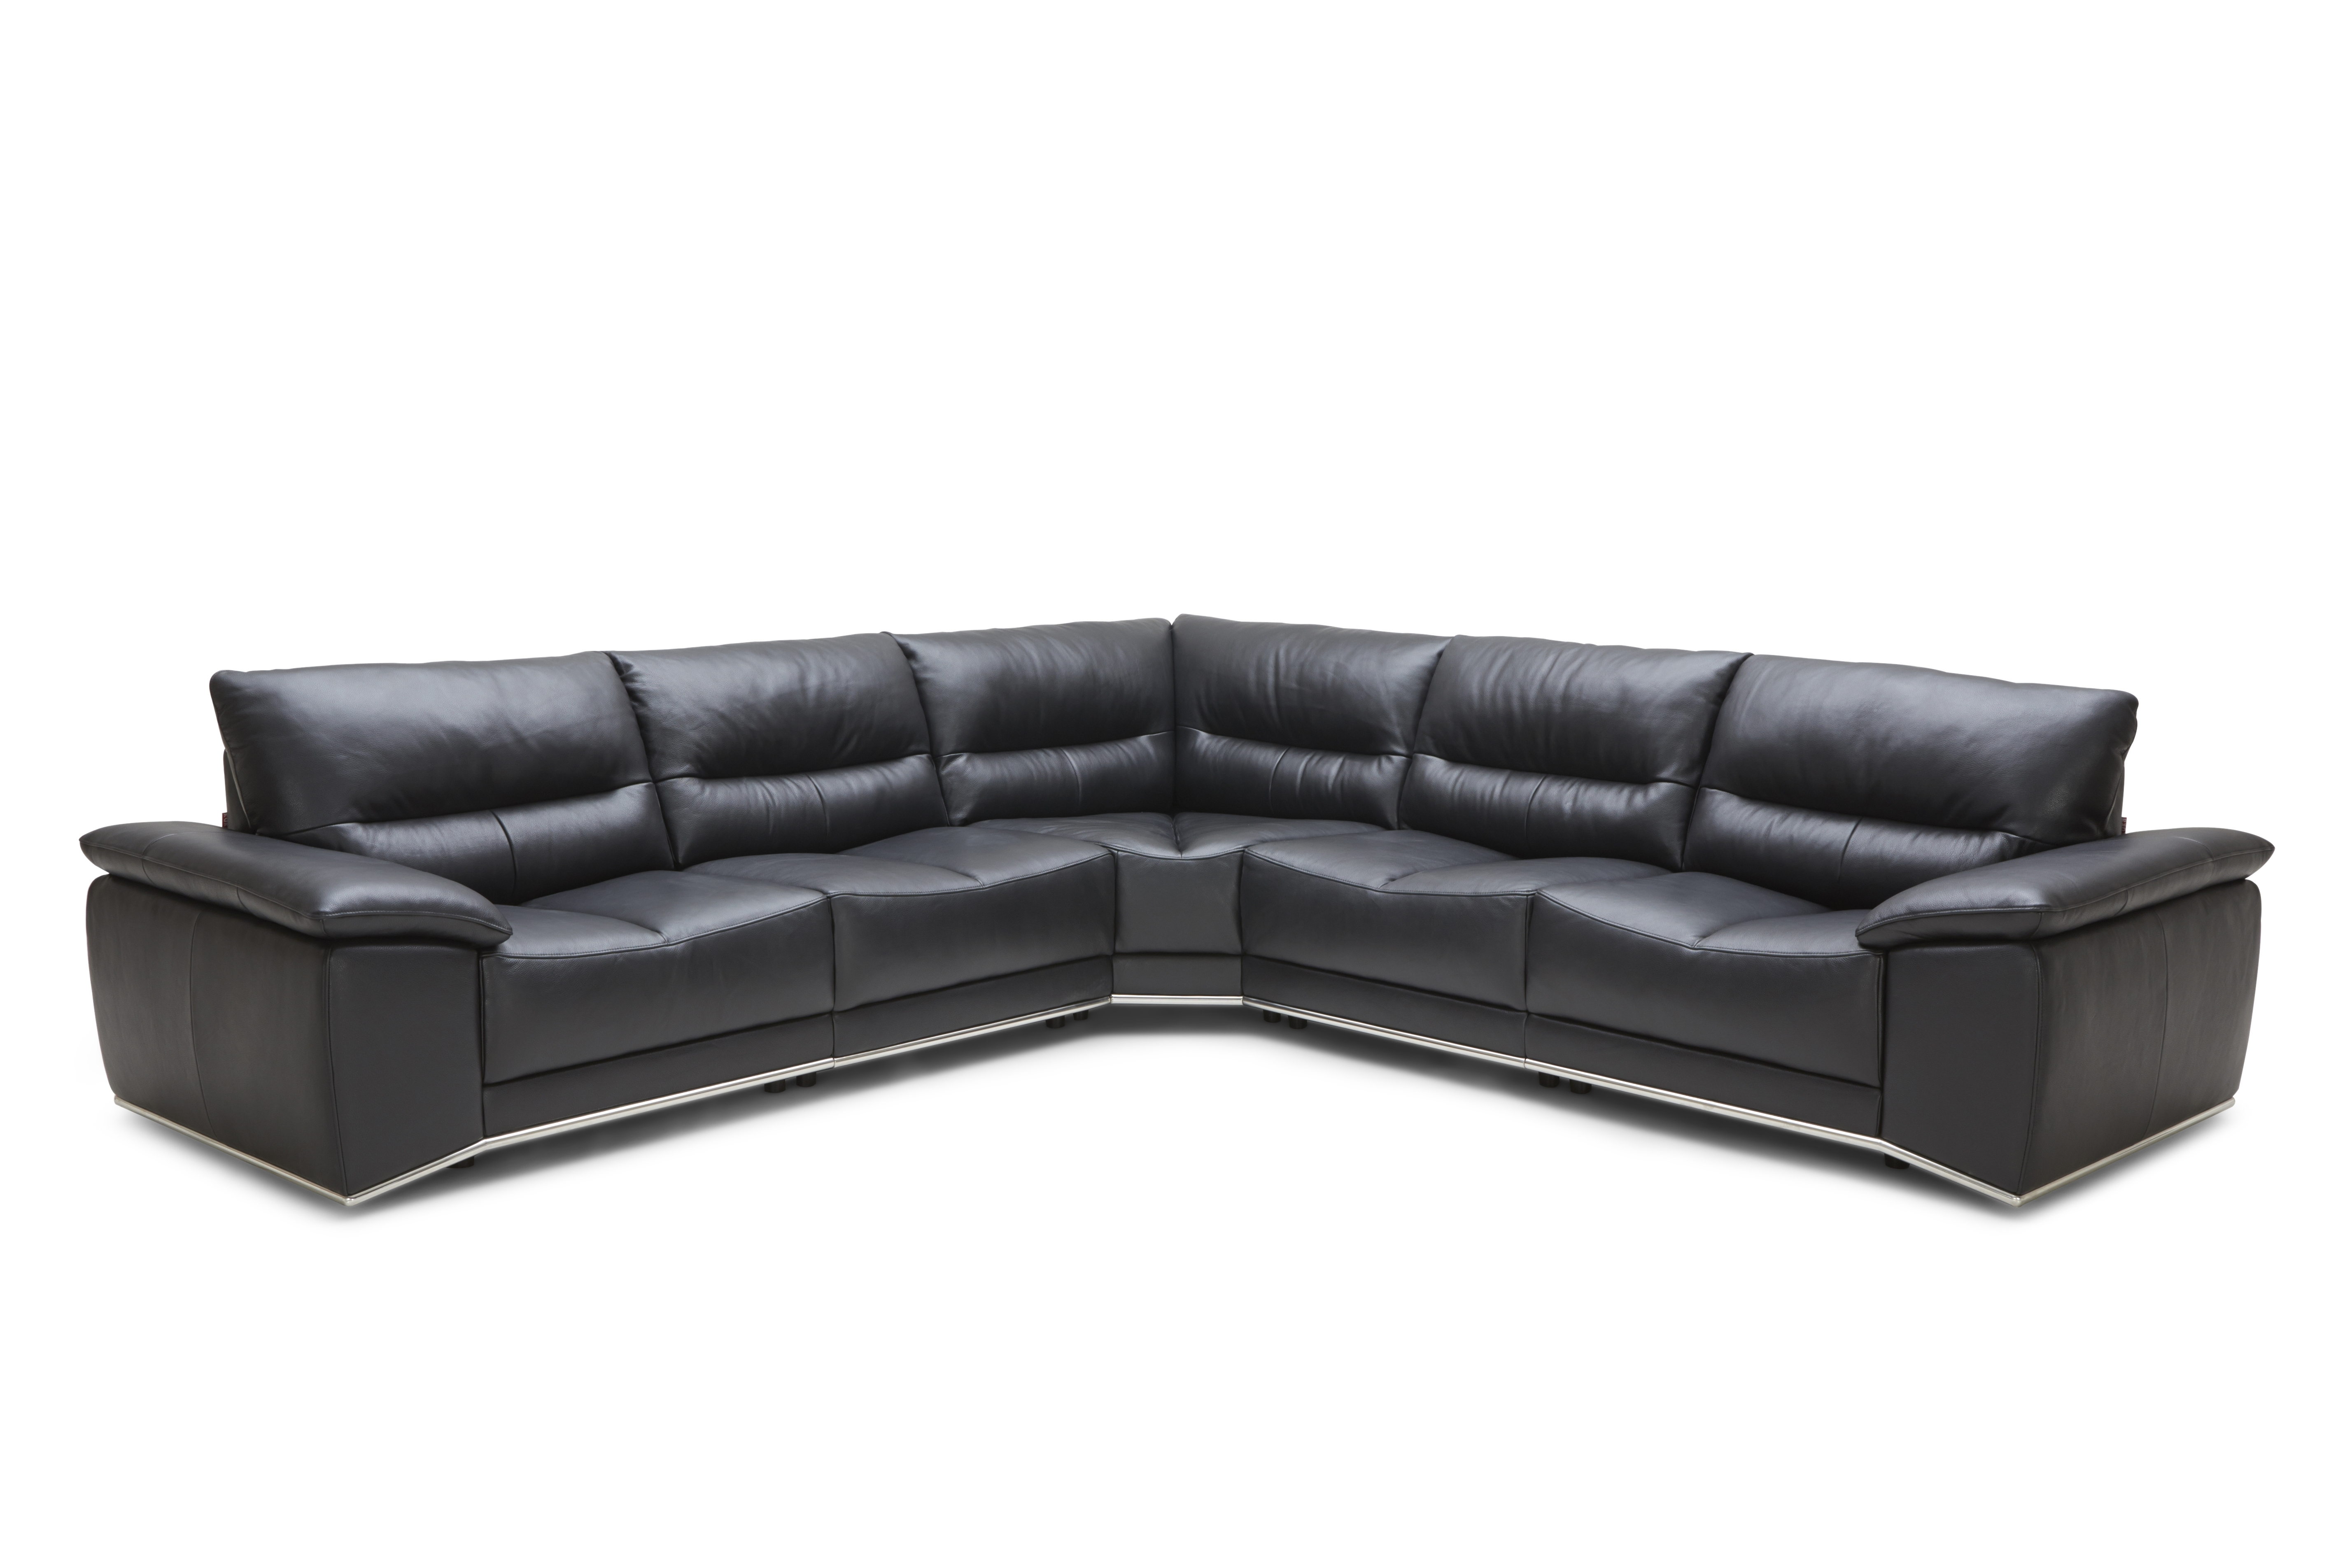 Sectional Furniture Toronto | Cheap Sectional Sofas Toronto Pertaining To Sectional Sofas In Toronto (View 9 of 10)